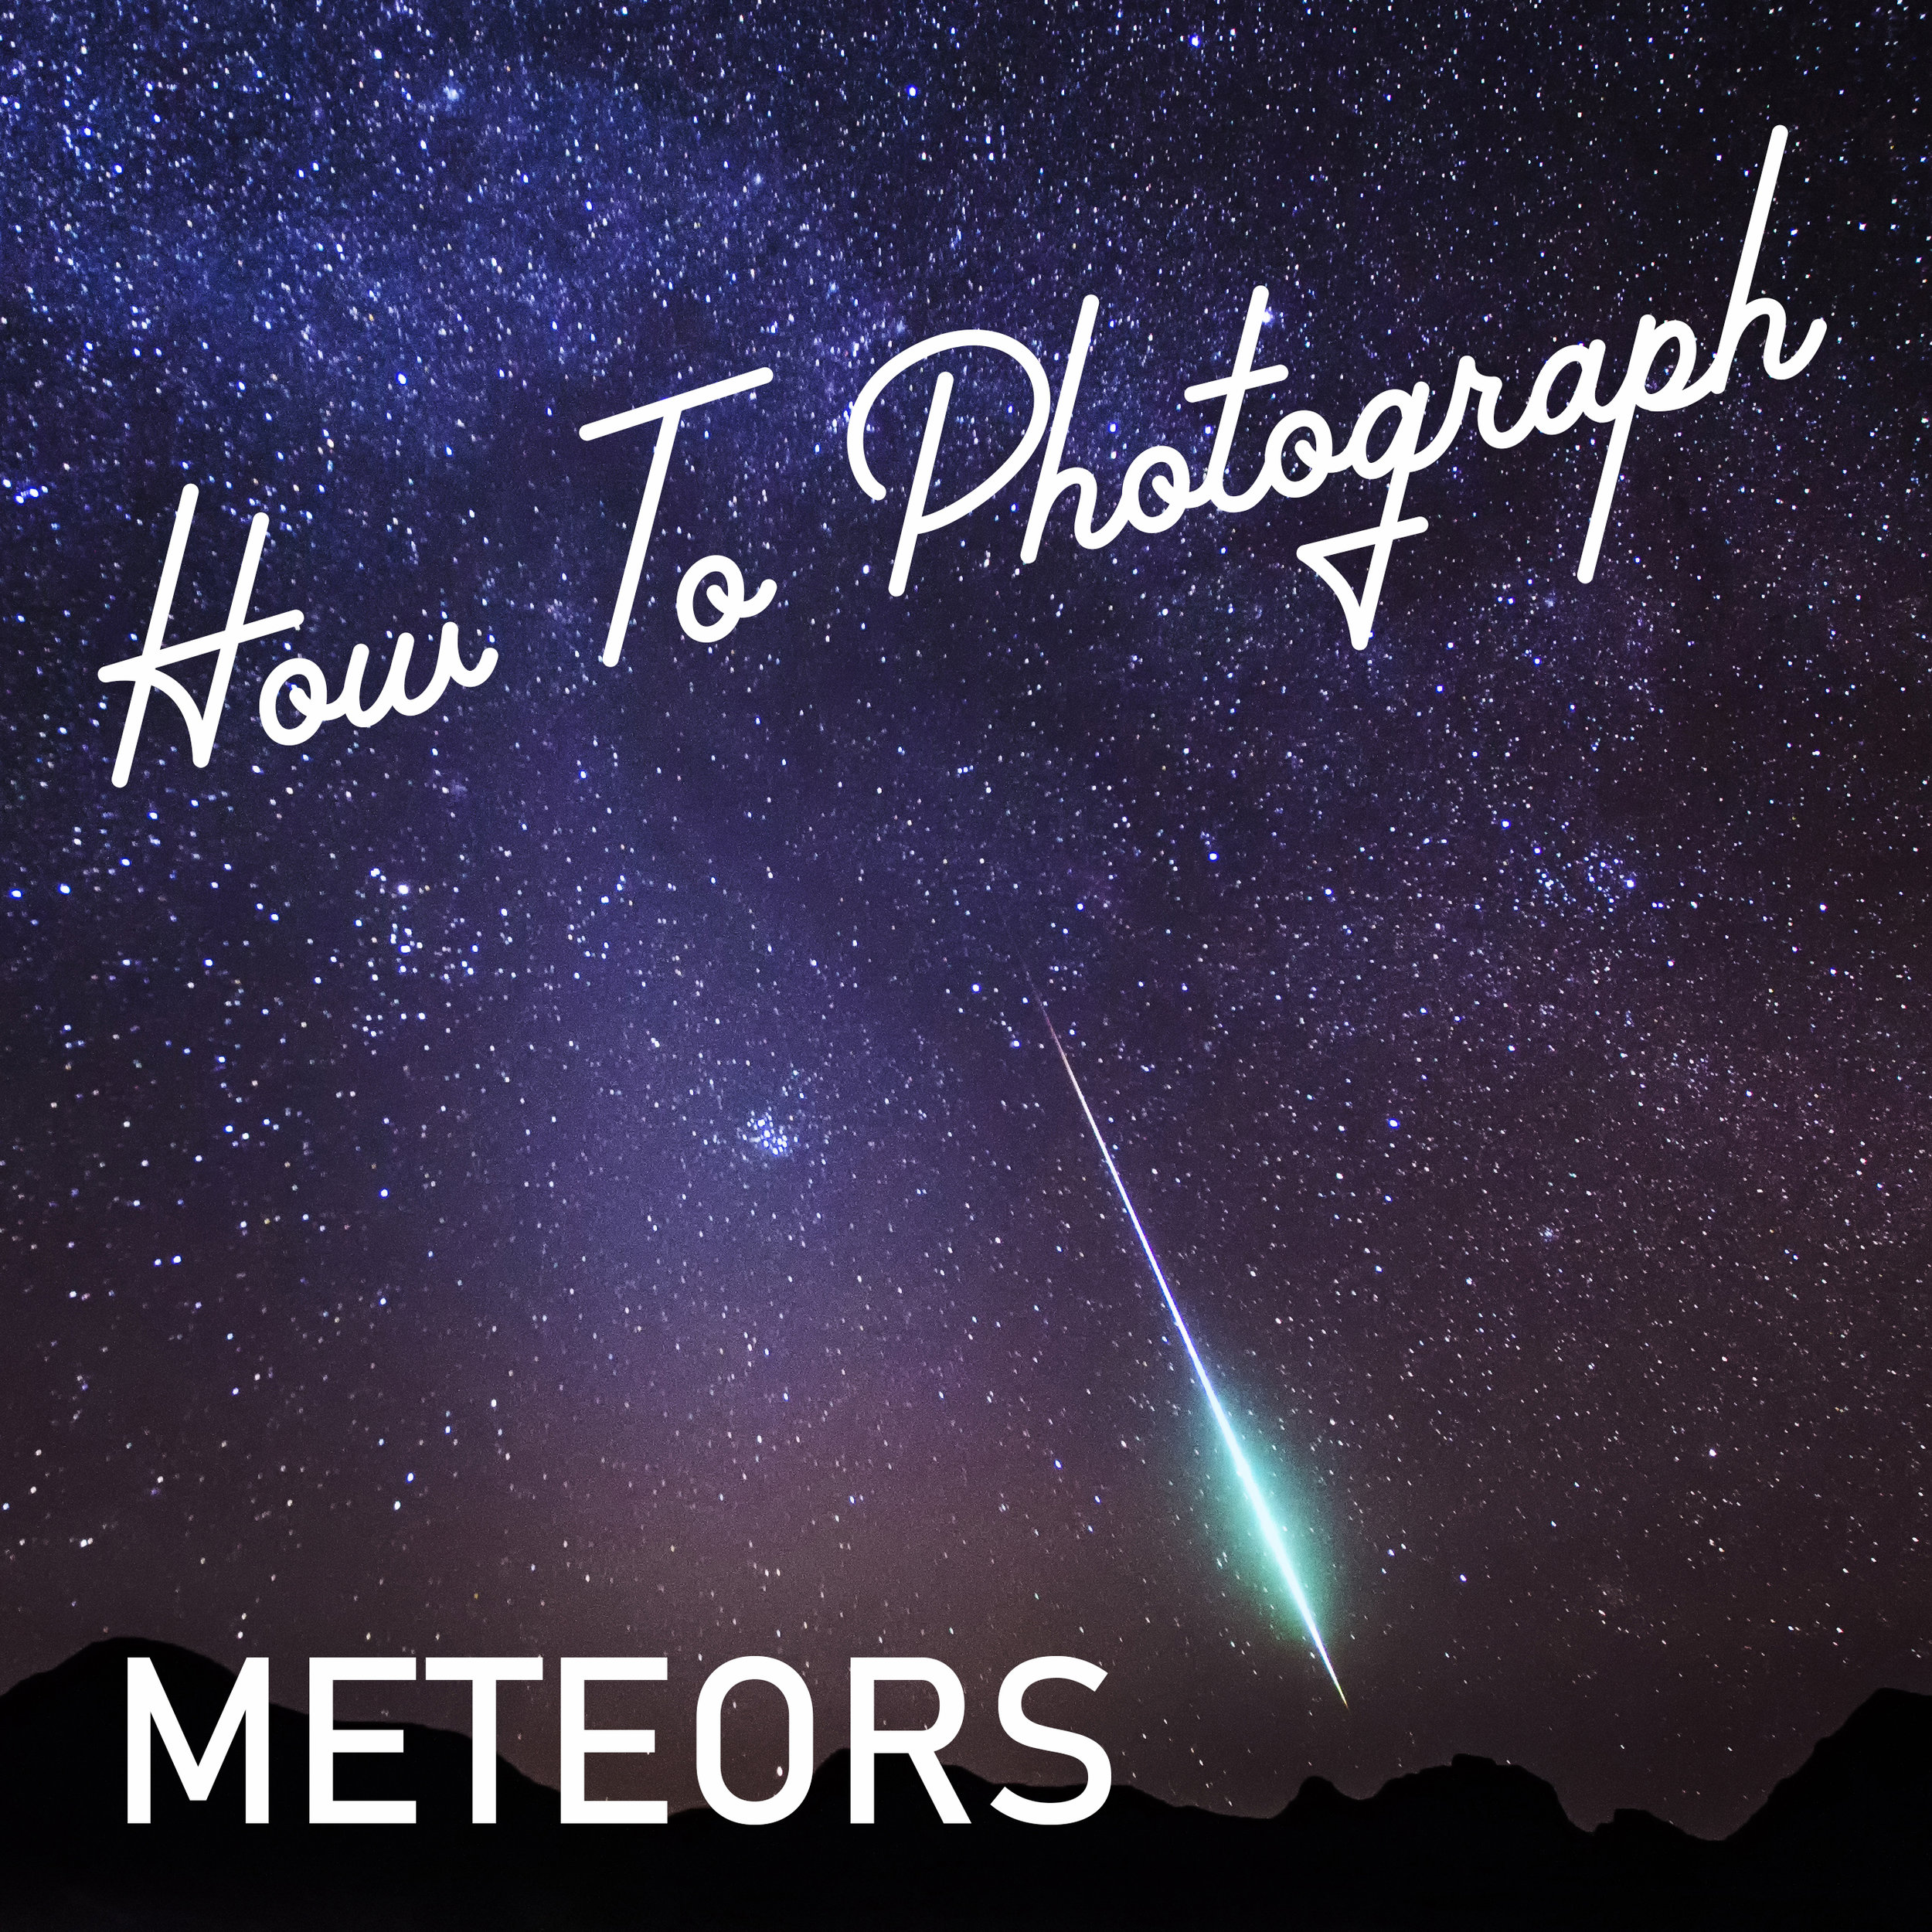 how to photograph meteor shower fireball shooting star perseid geminid 2018